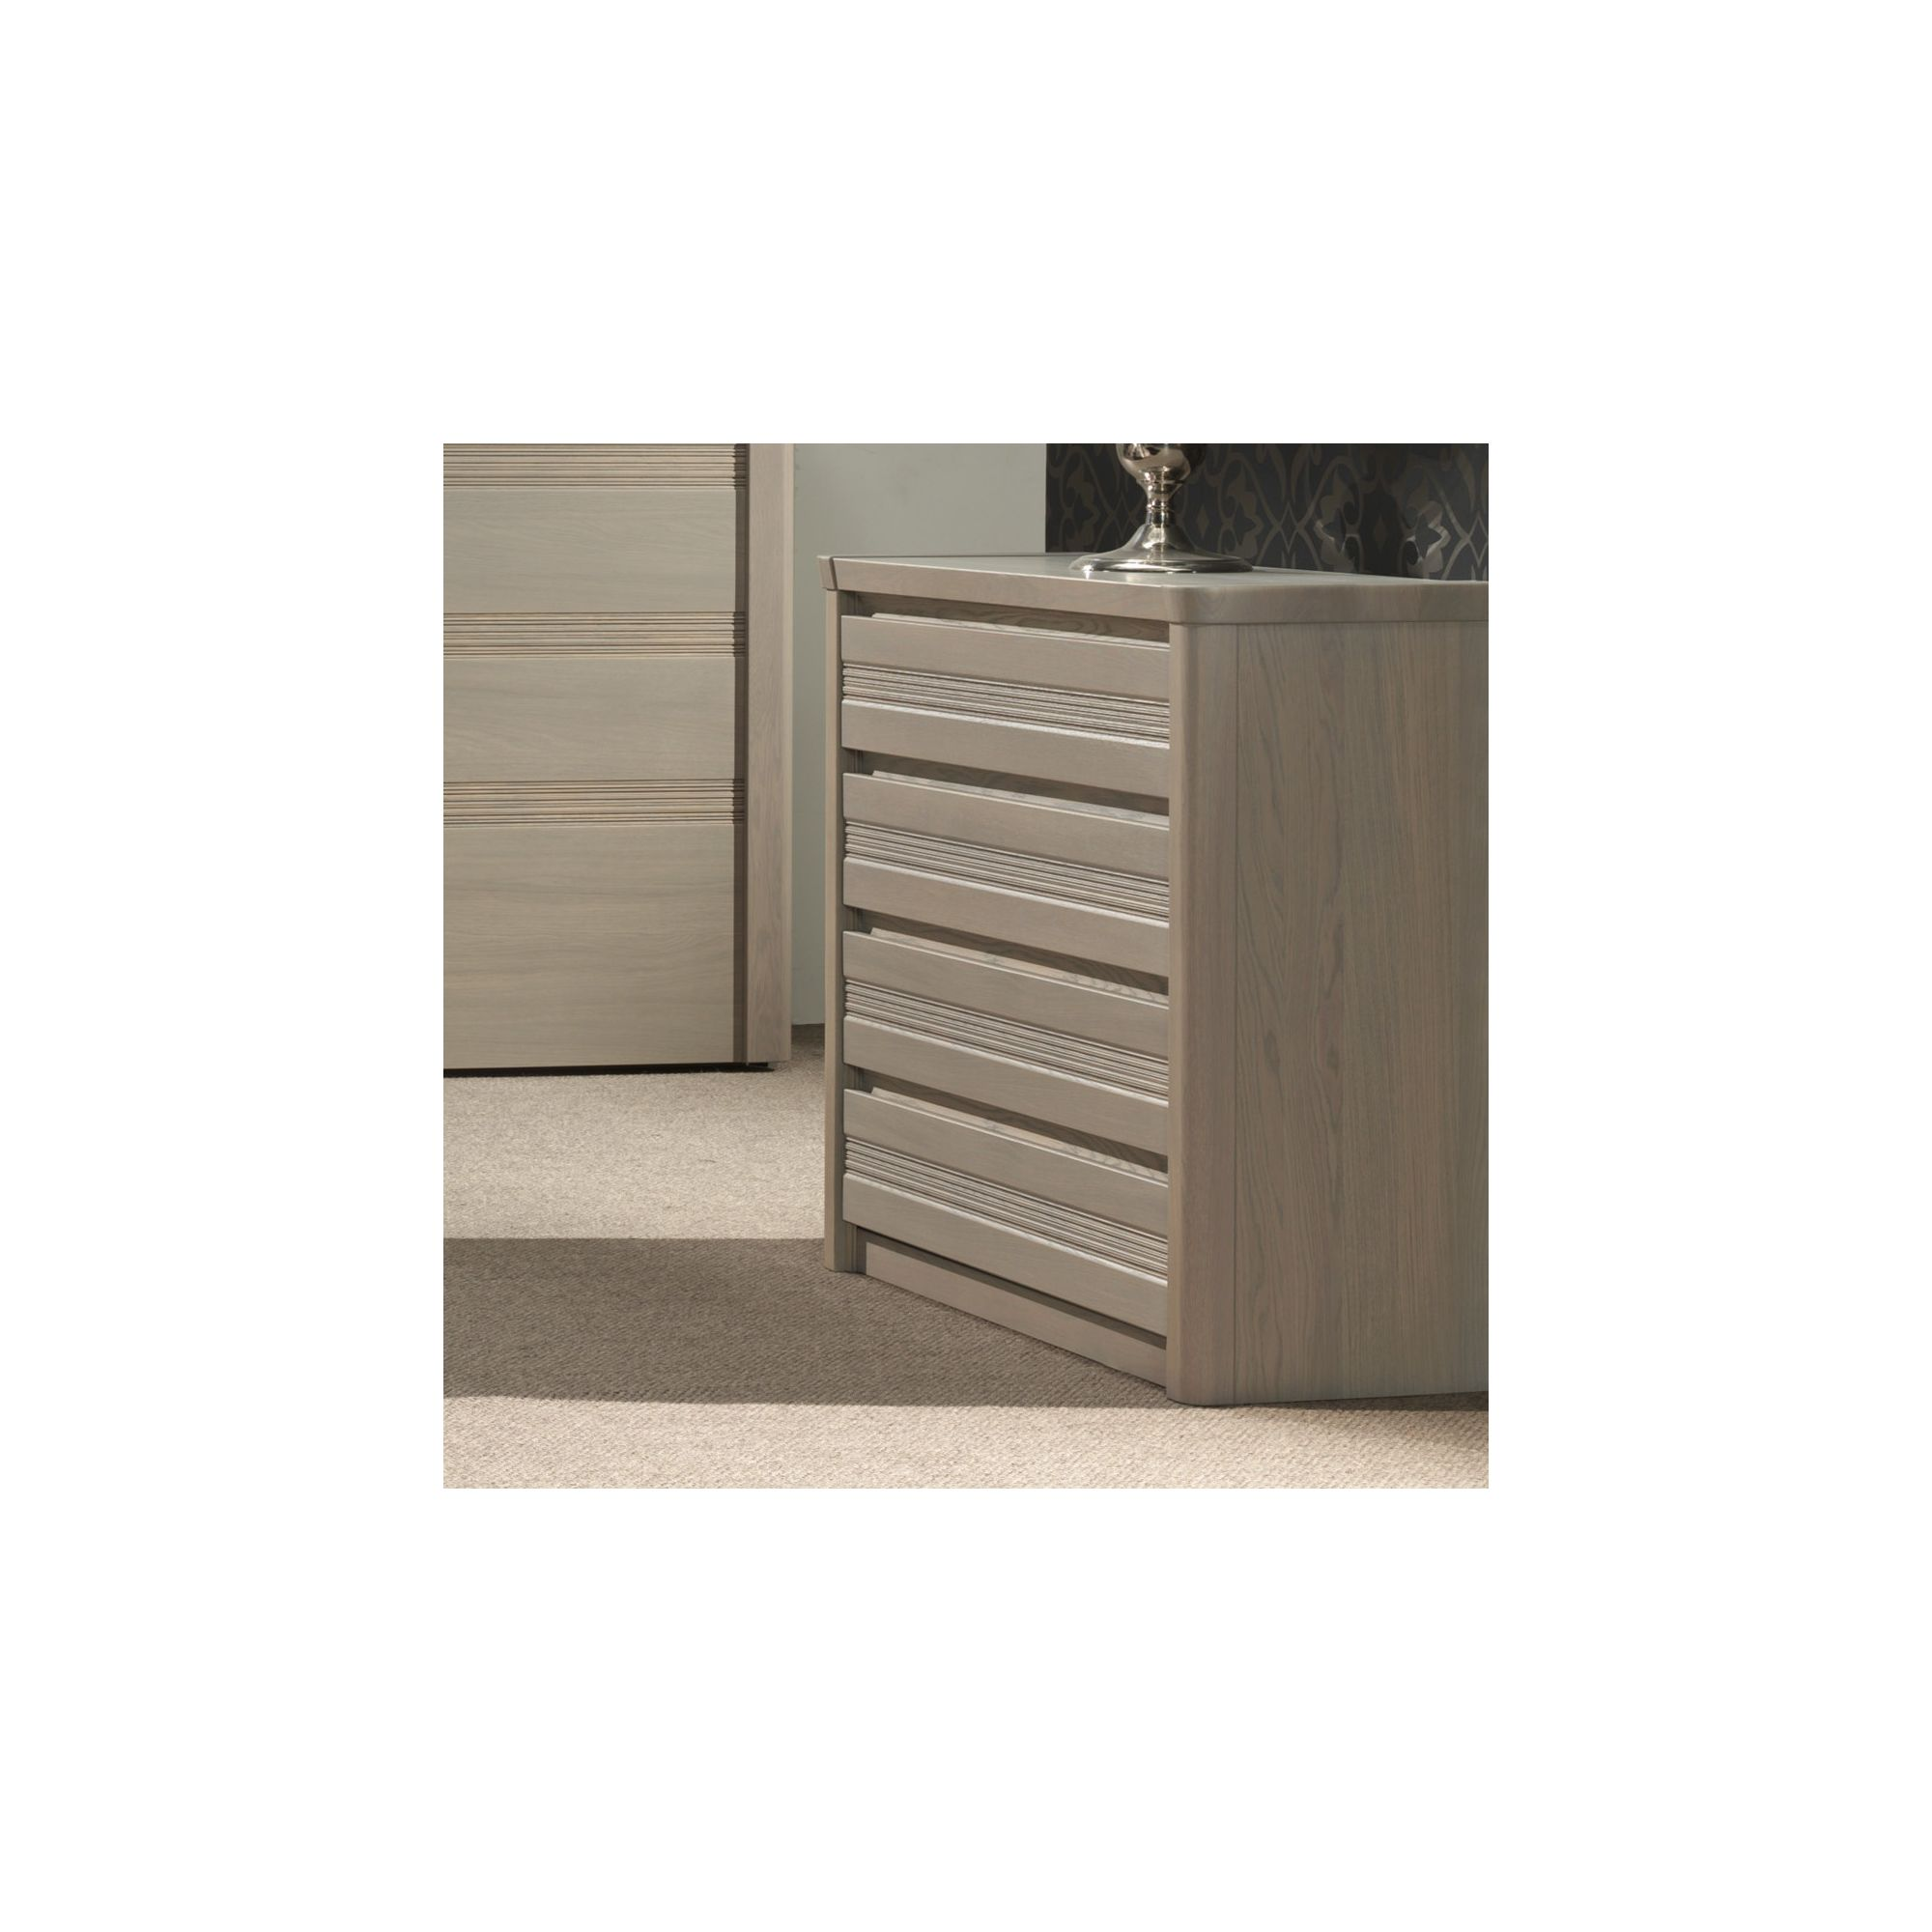 Sleepline Mundo 4 Drawers Chest - Mat Lacquered at Tesco Direct